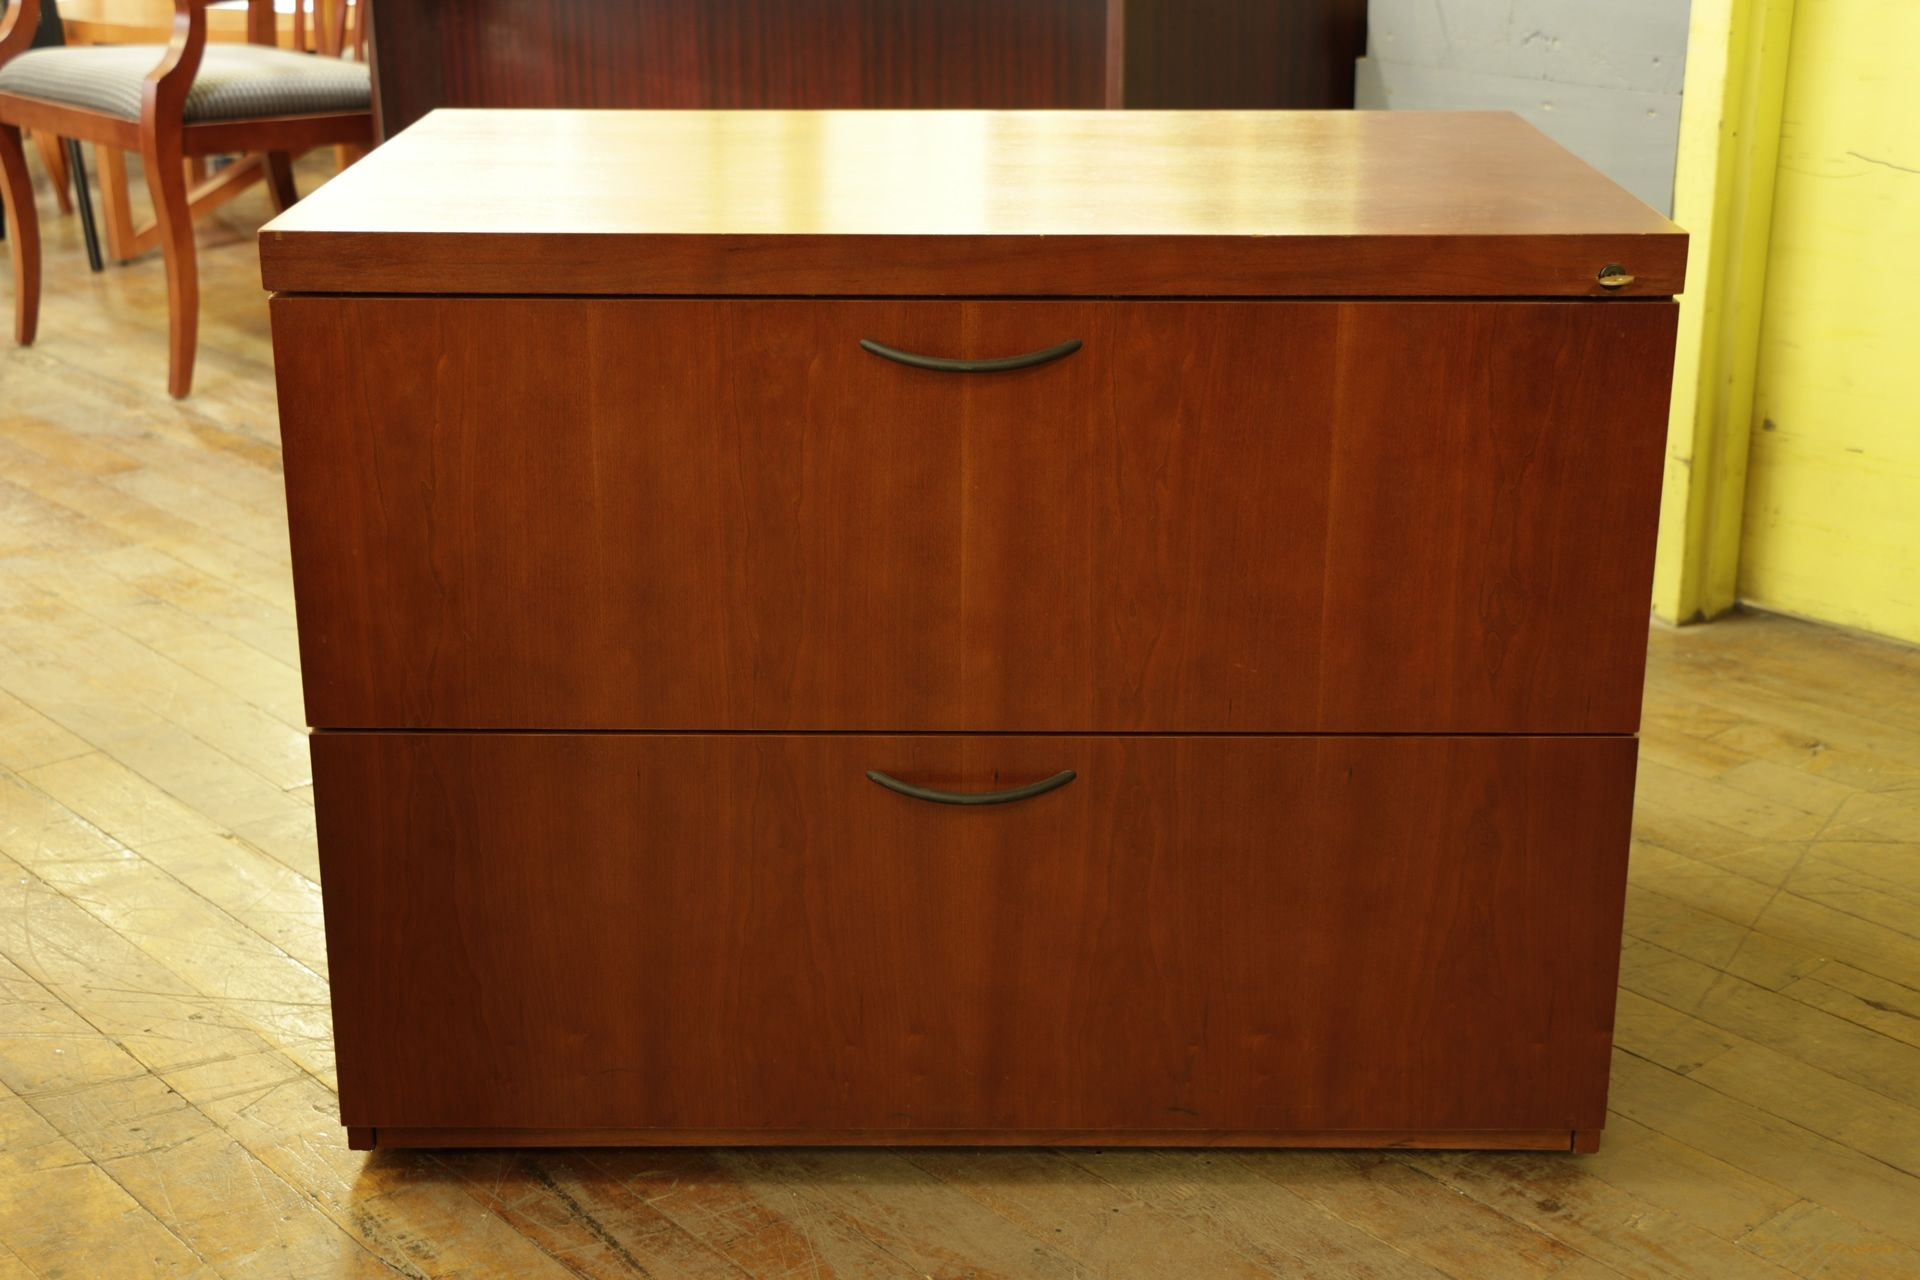 Cherry File Cabinet 4 Drawer - Frasesdeconquista.com